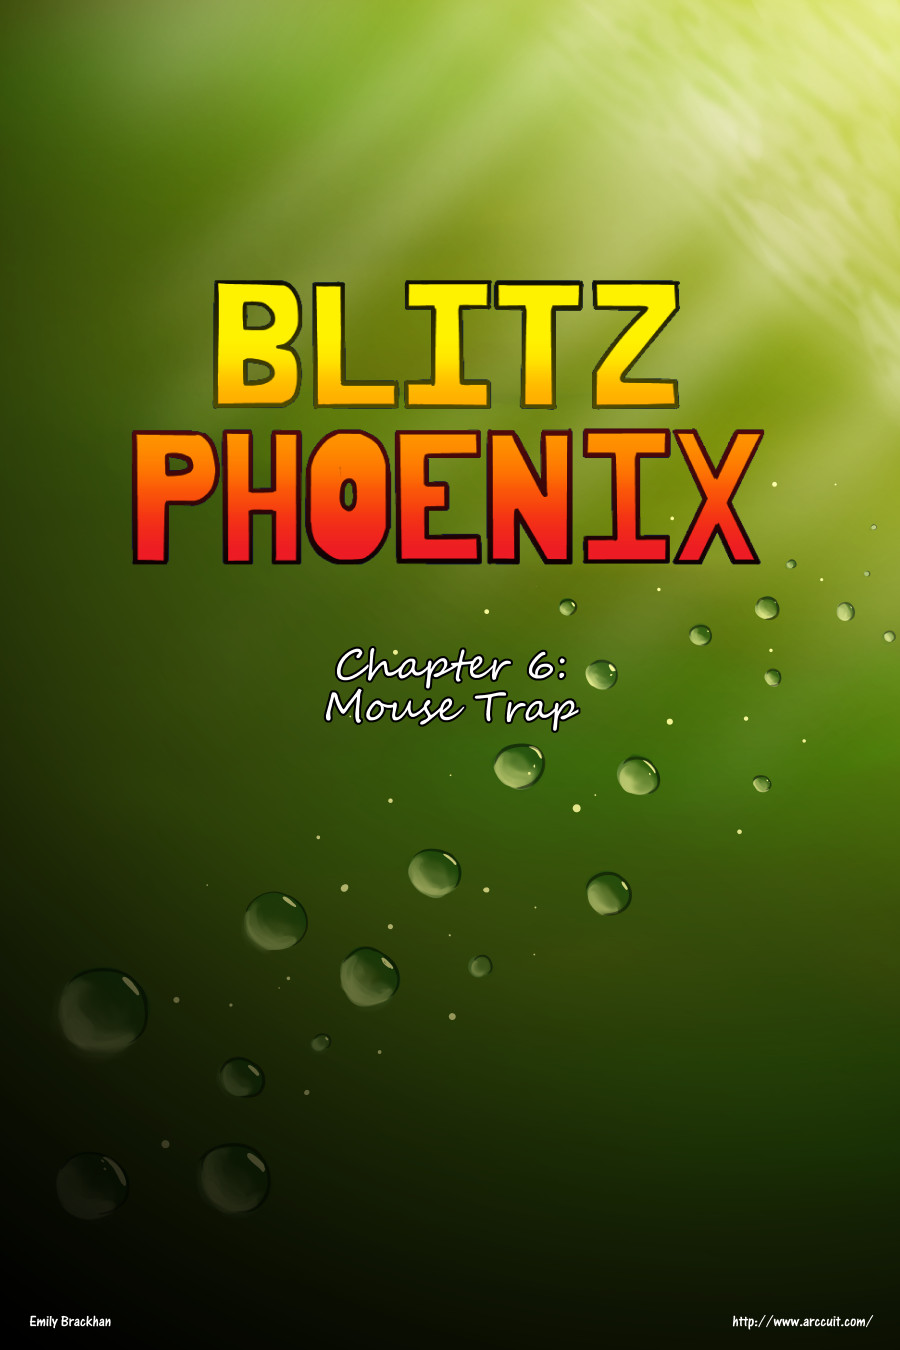 Blitz Phoenix: Chapter 6 - Mouse Trap